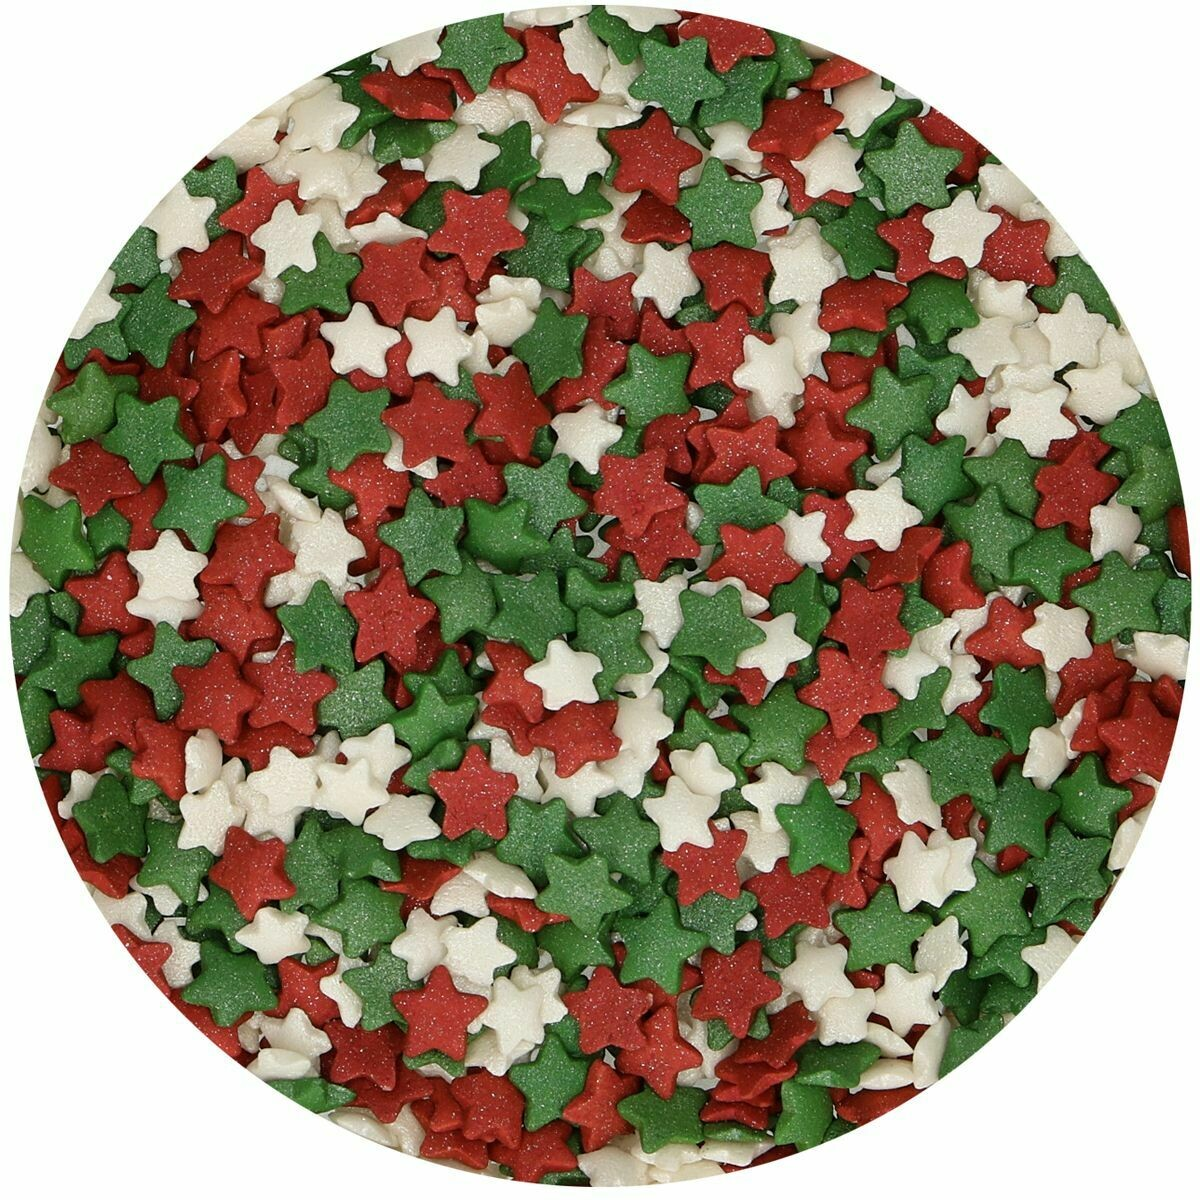 FunCakes Sprinkles -STARS -RED, GREEN & WHITE 60γρ - Μείγμα Ζαχαρωτών Κόκκινα, Πράσινα και Λευκά Αστέρια